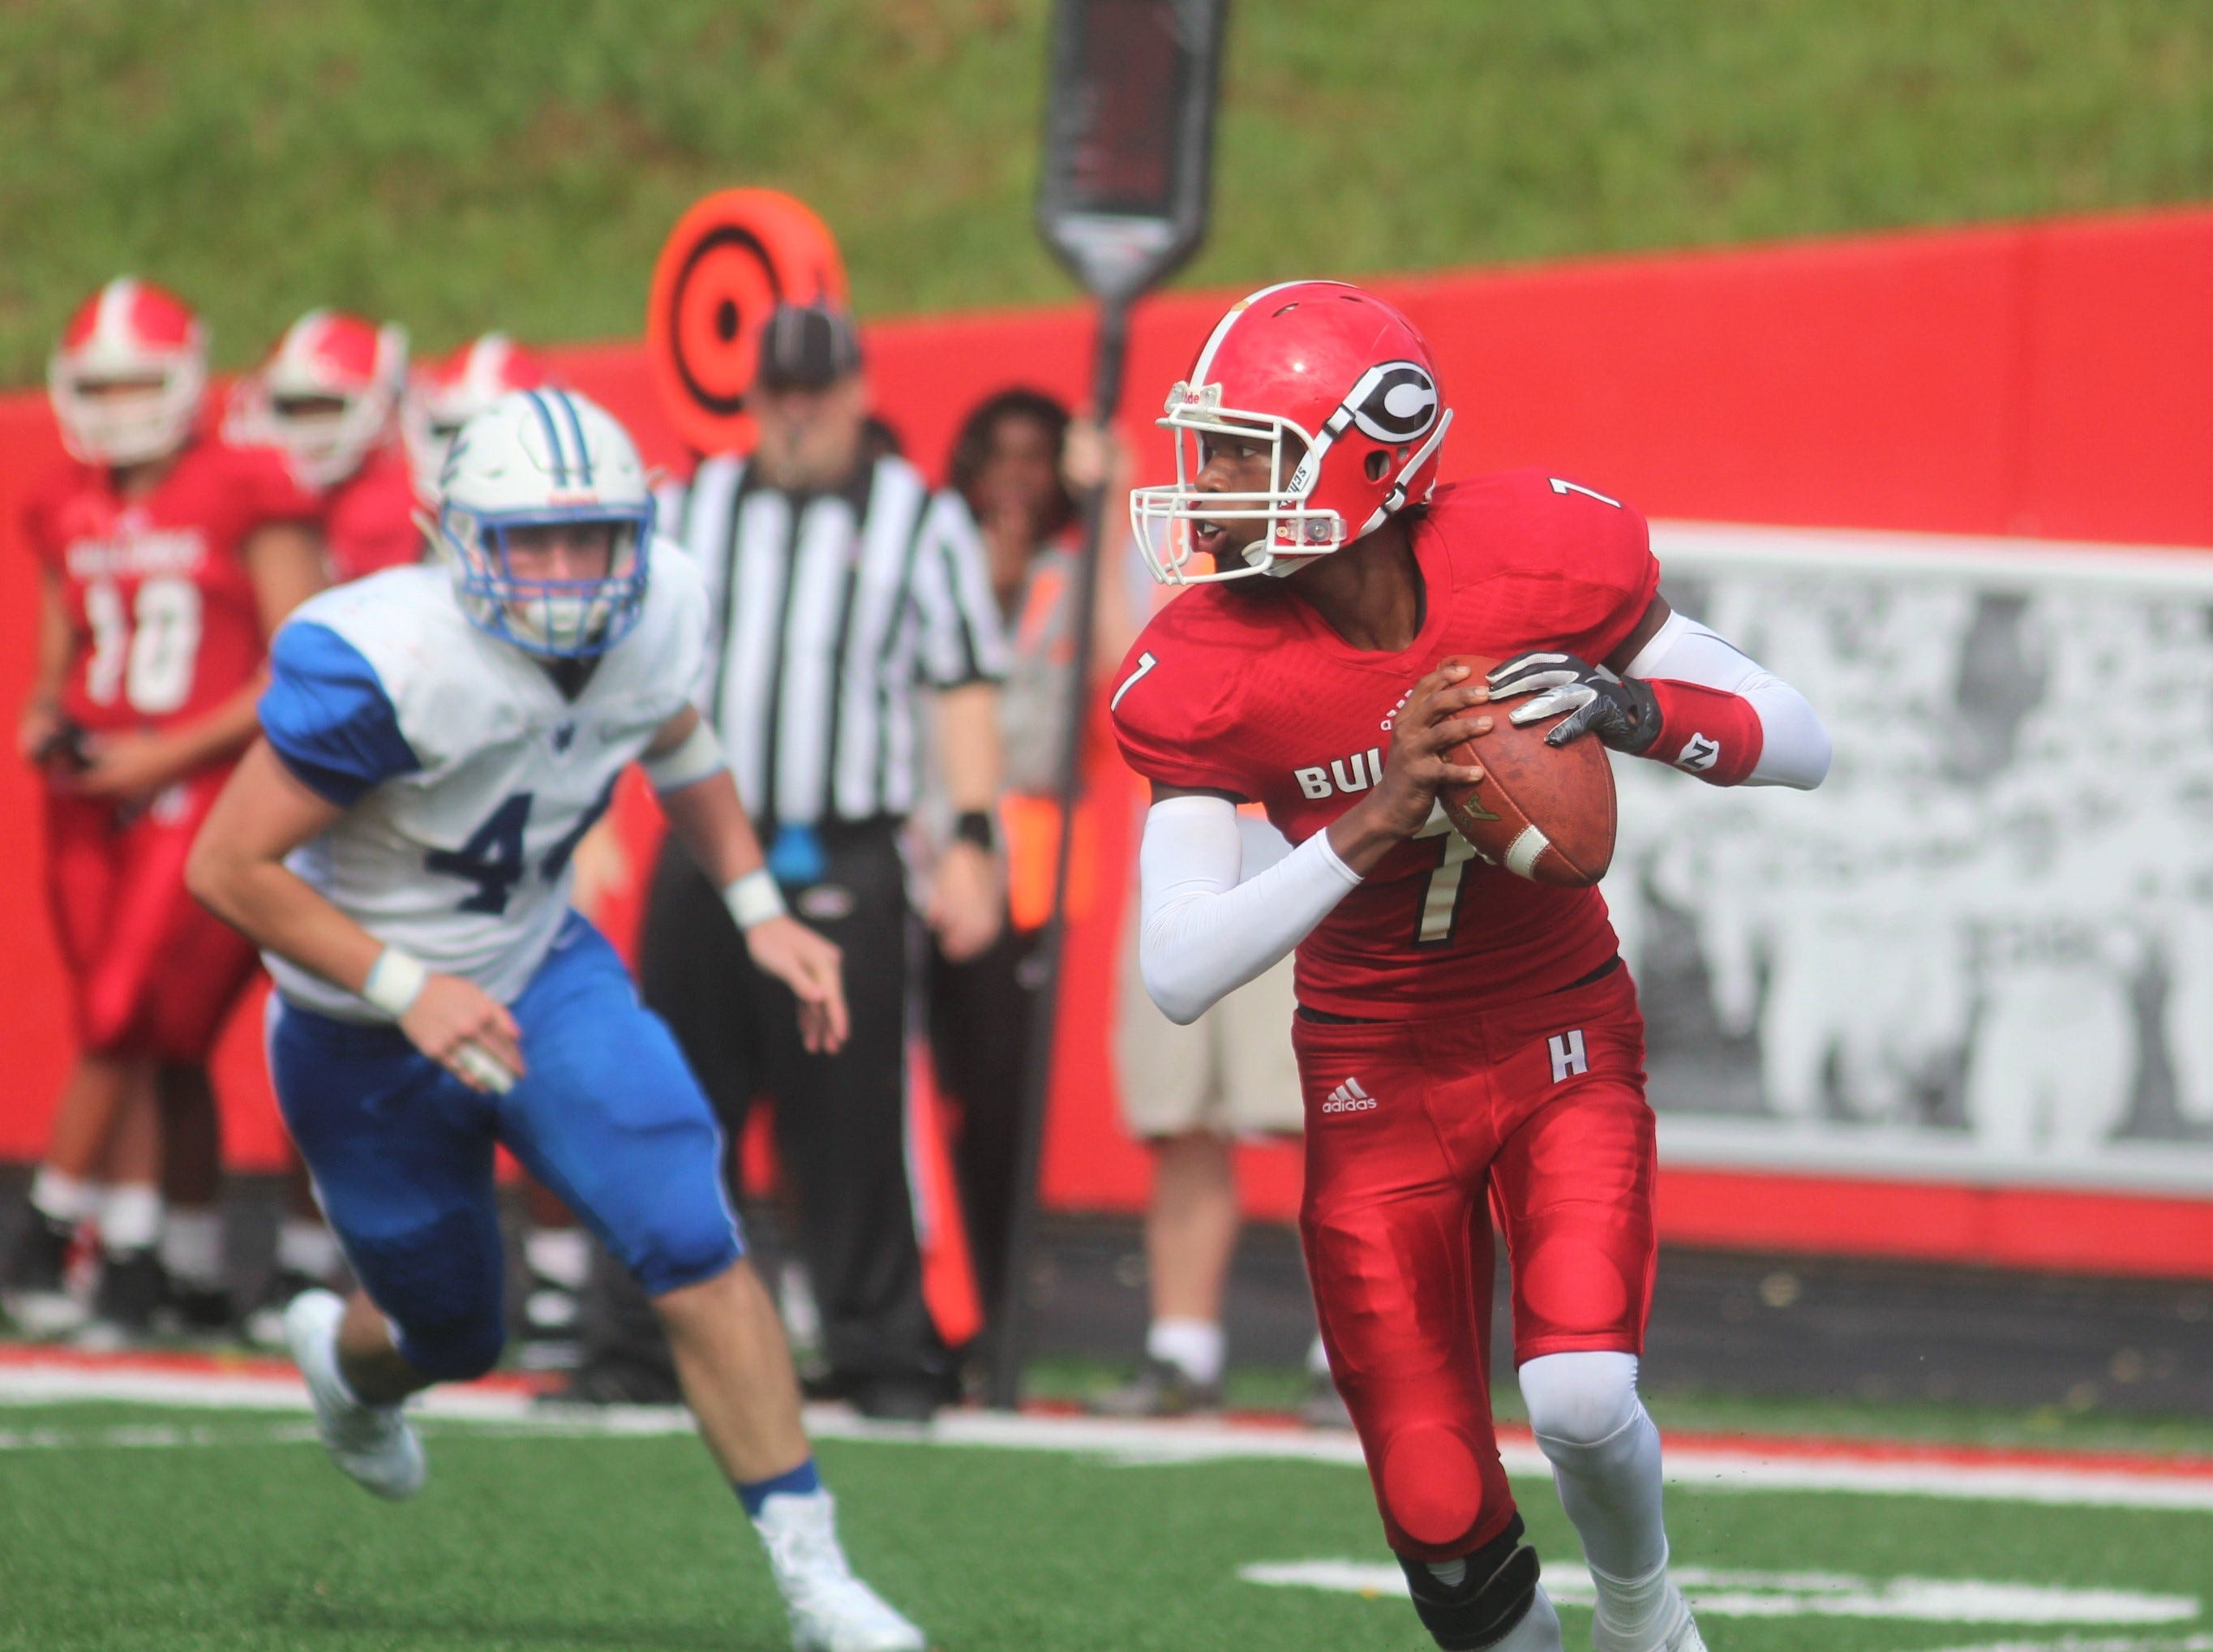 Holmes junior Ben Girton rolls out to pass during Walton-Verona's 48-0 win over Holmes Sept. 1 at Holmes High School The game concluded on Saturday morning after being suspended at halftime because of weather.